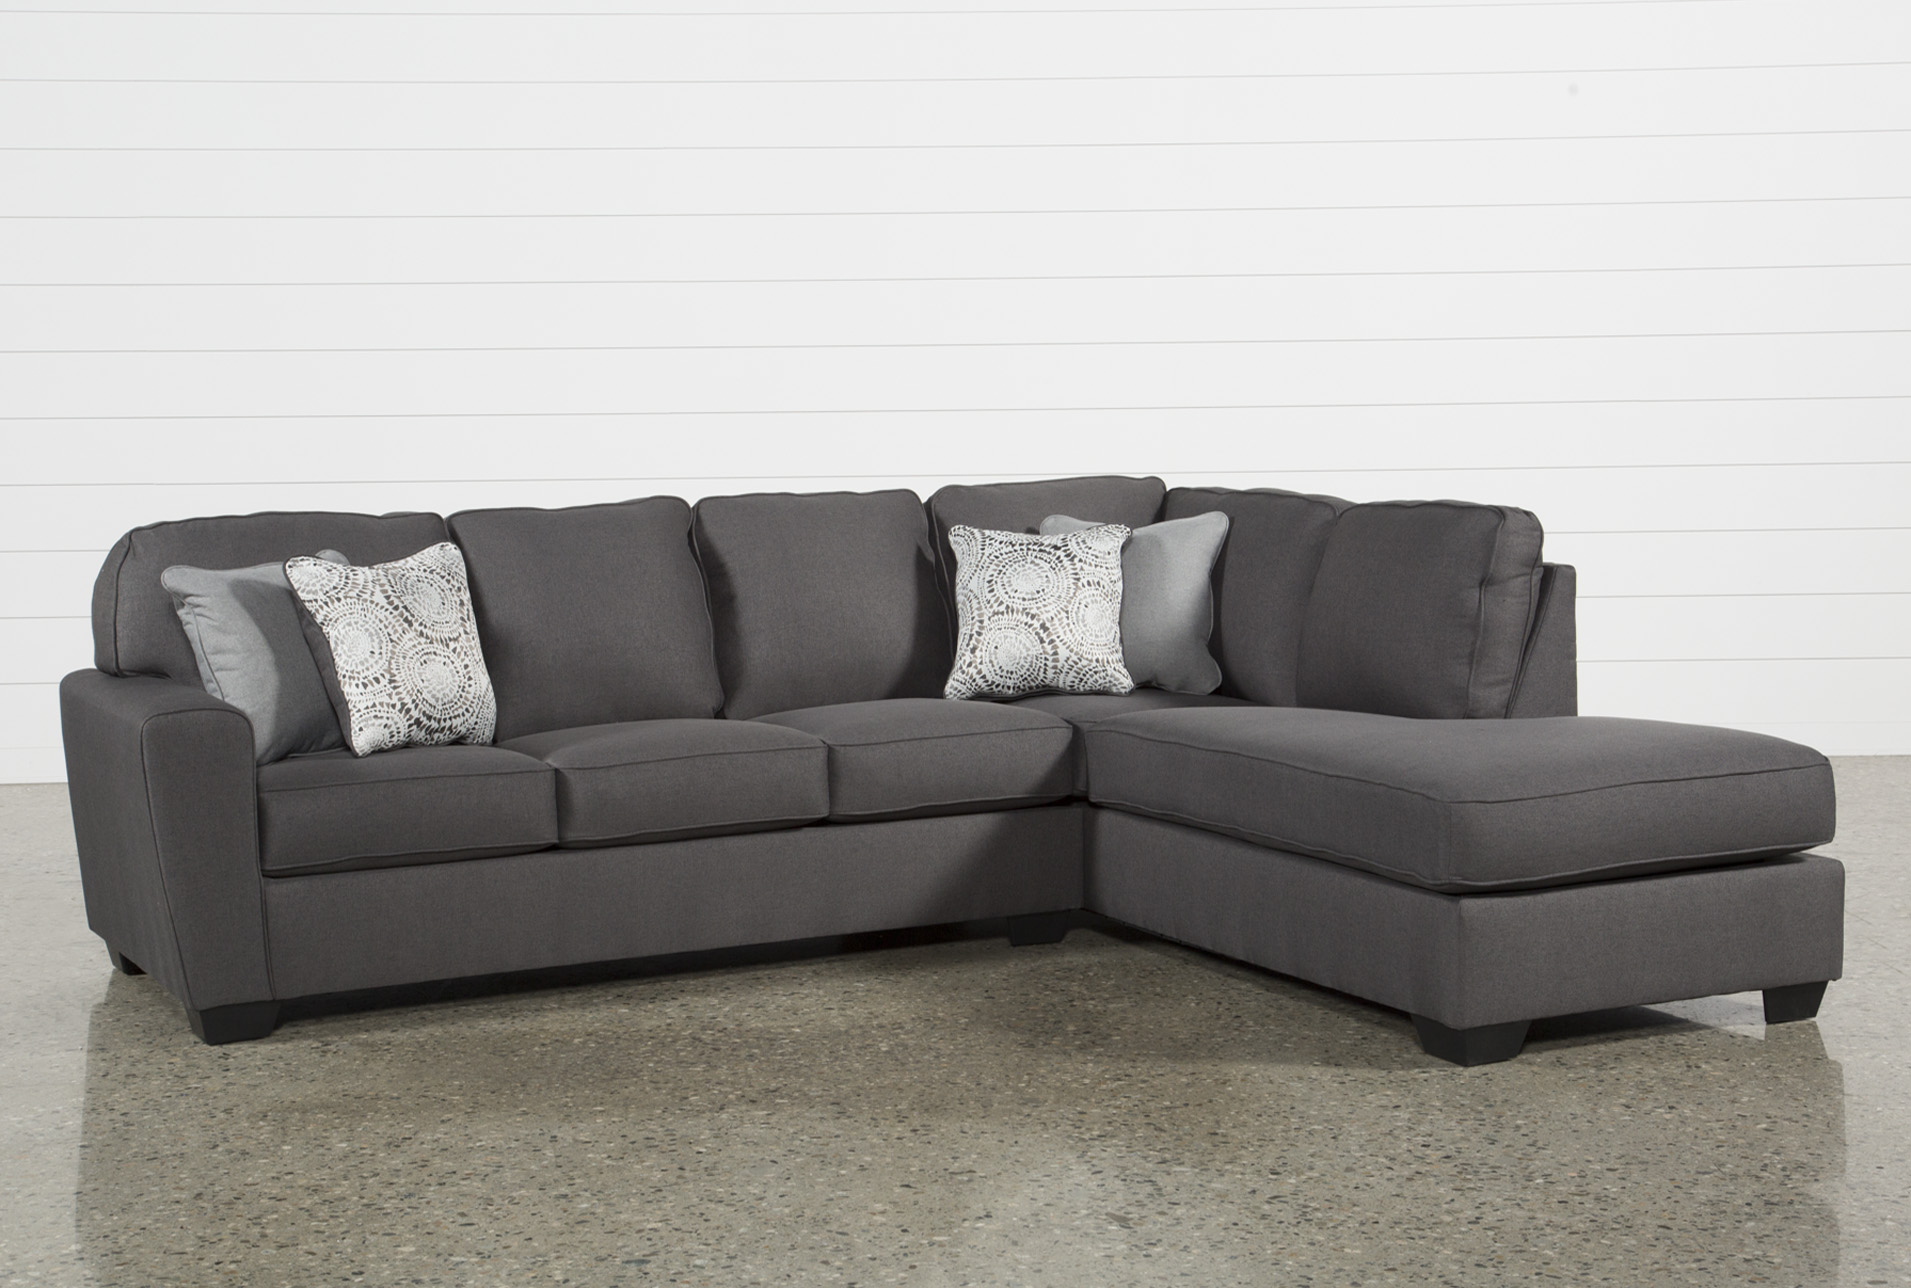 Mcdade Graphite 2 Piece Sectional W/Raf Chaise   360